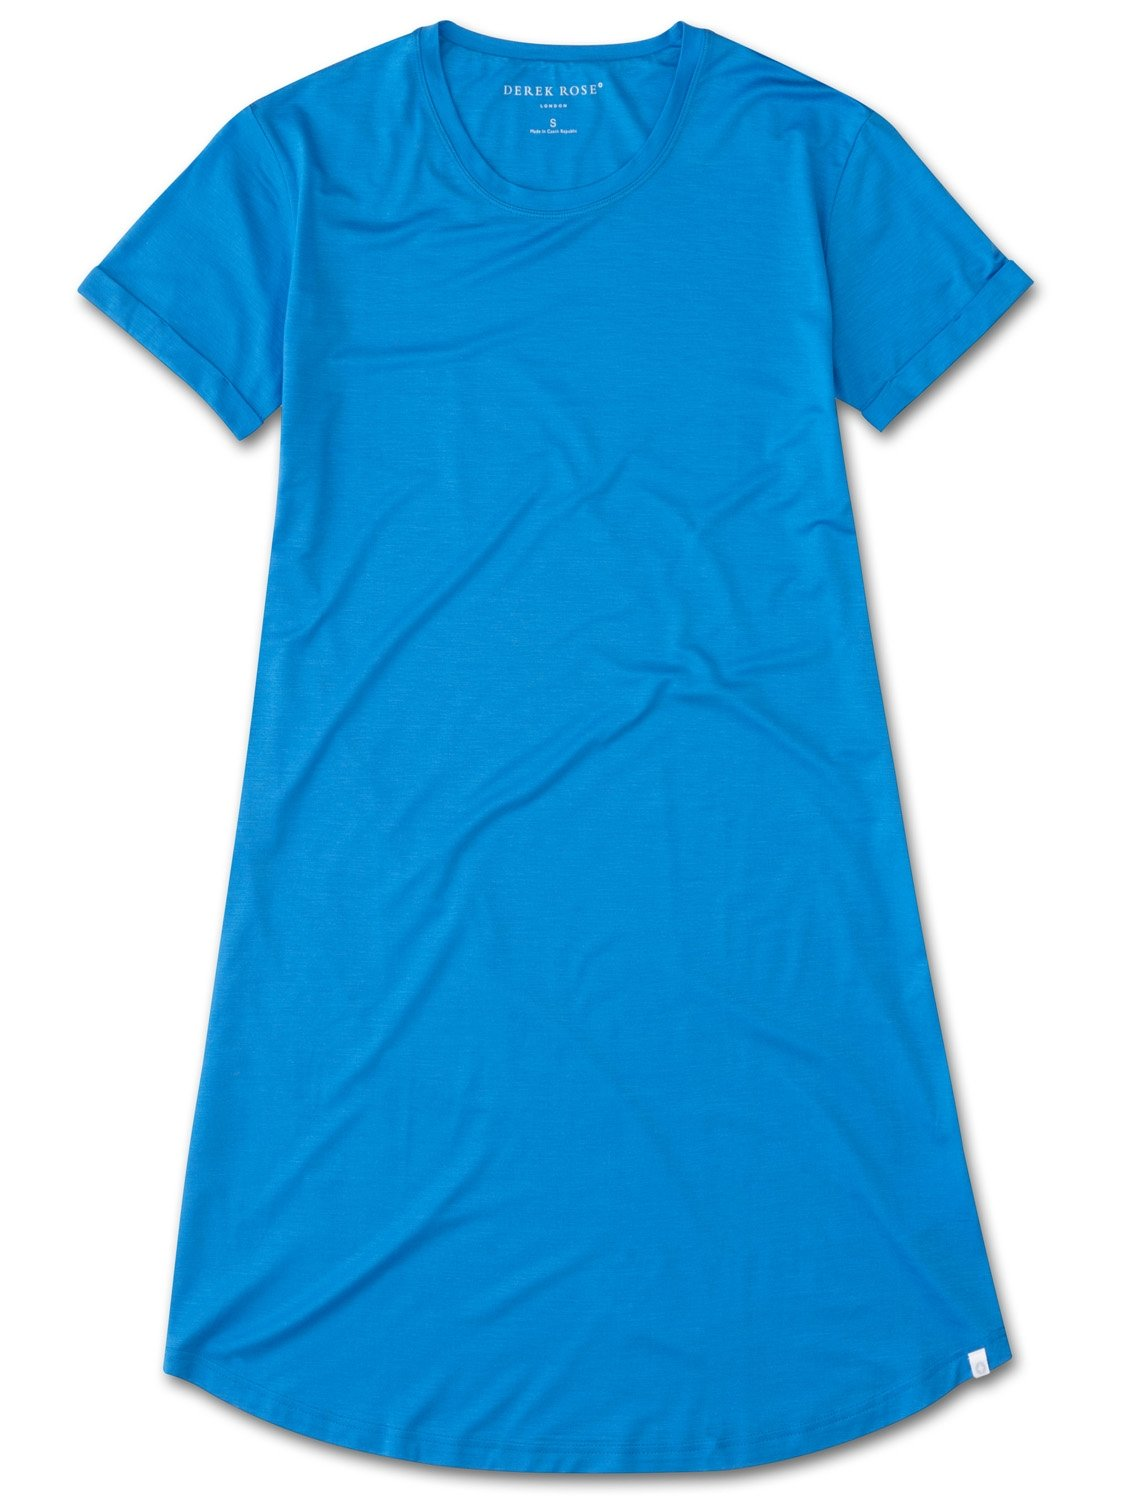 Women's Sleep T-Shirt Carla 3 Micro Modal Stretch Blue